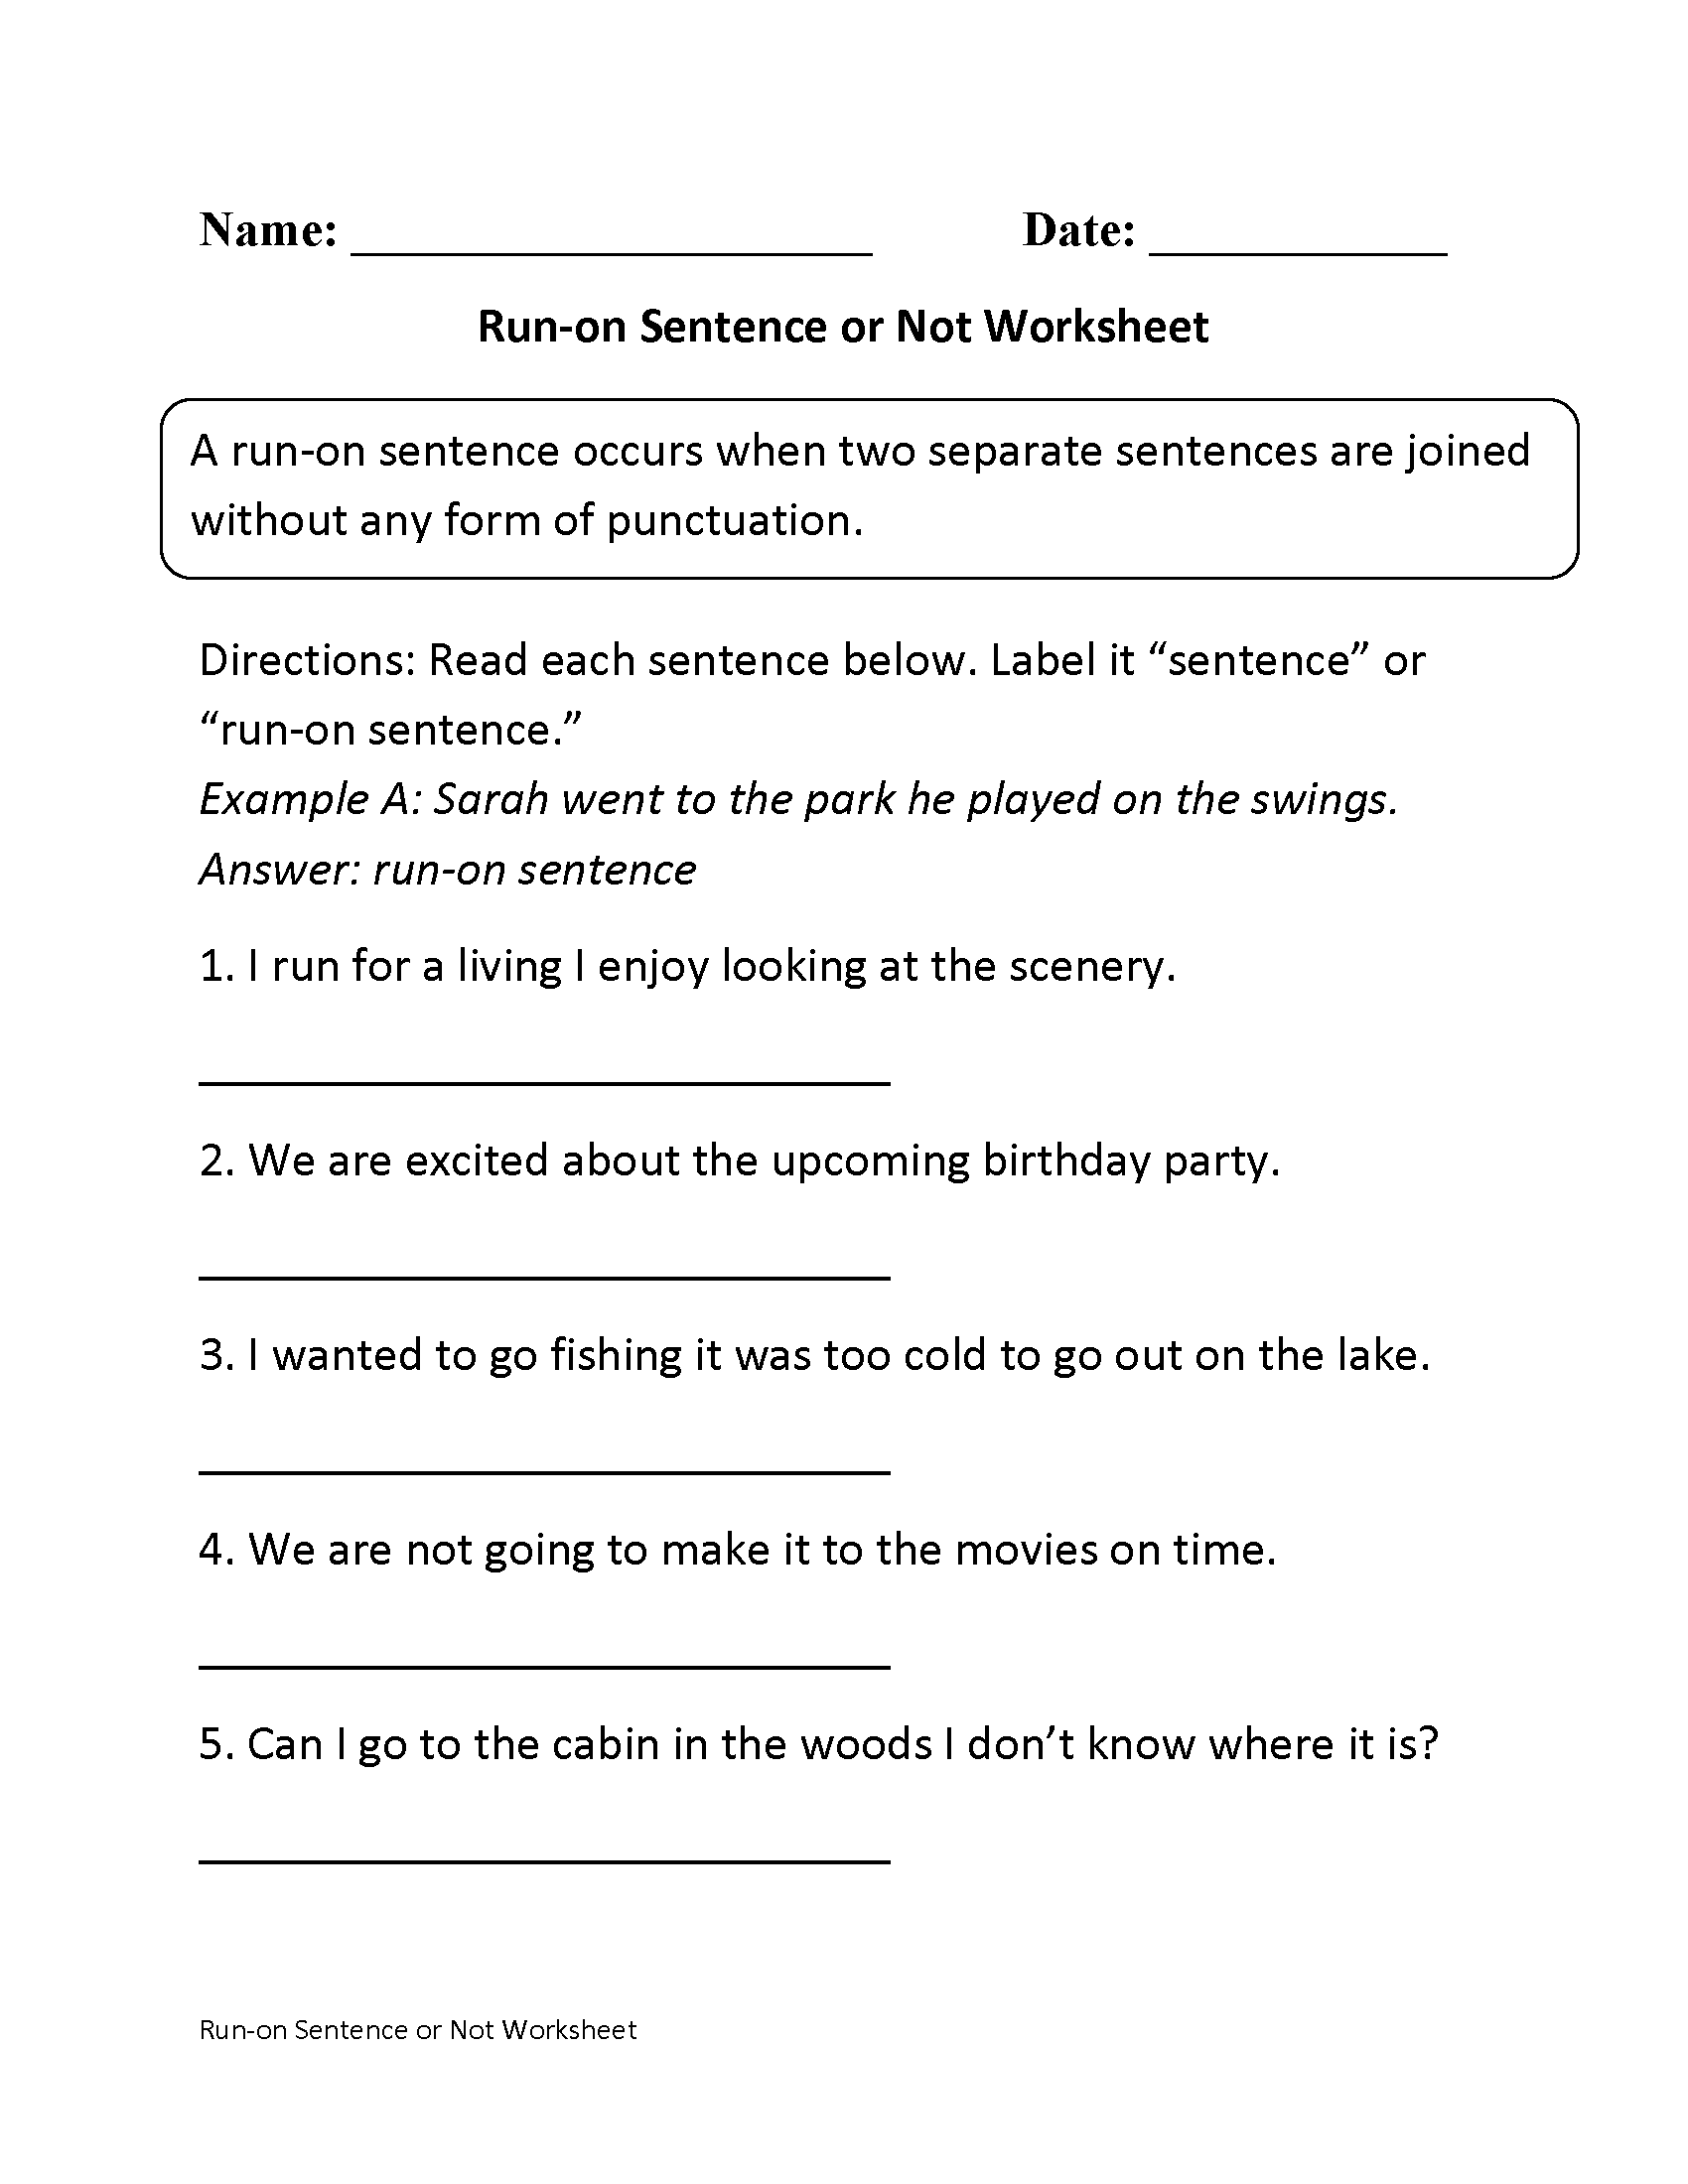 Worksheets Sentence Correction Worksheets sentences worksheets run on or not worksheet